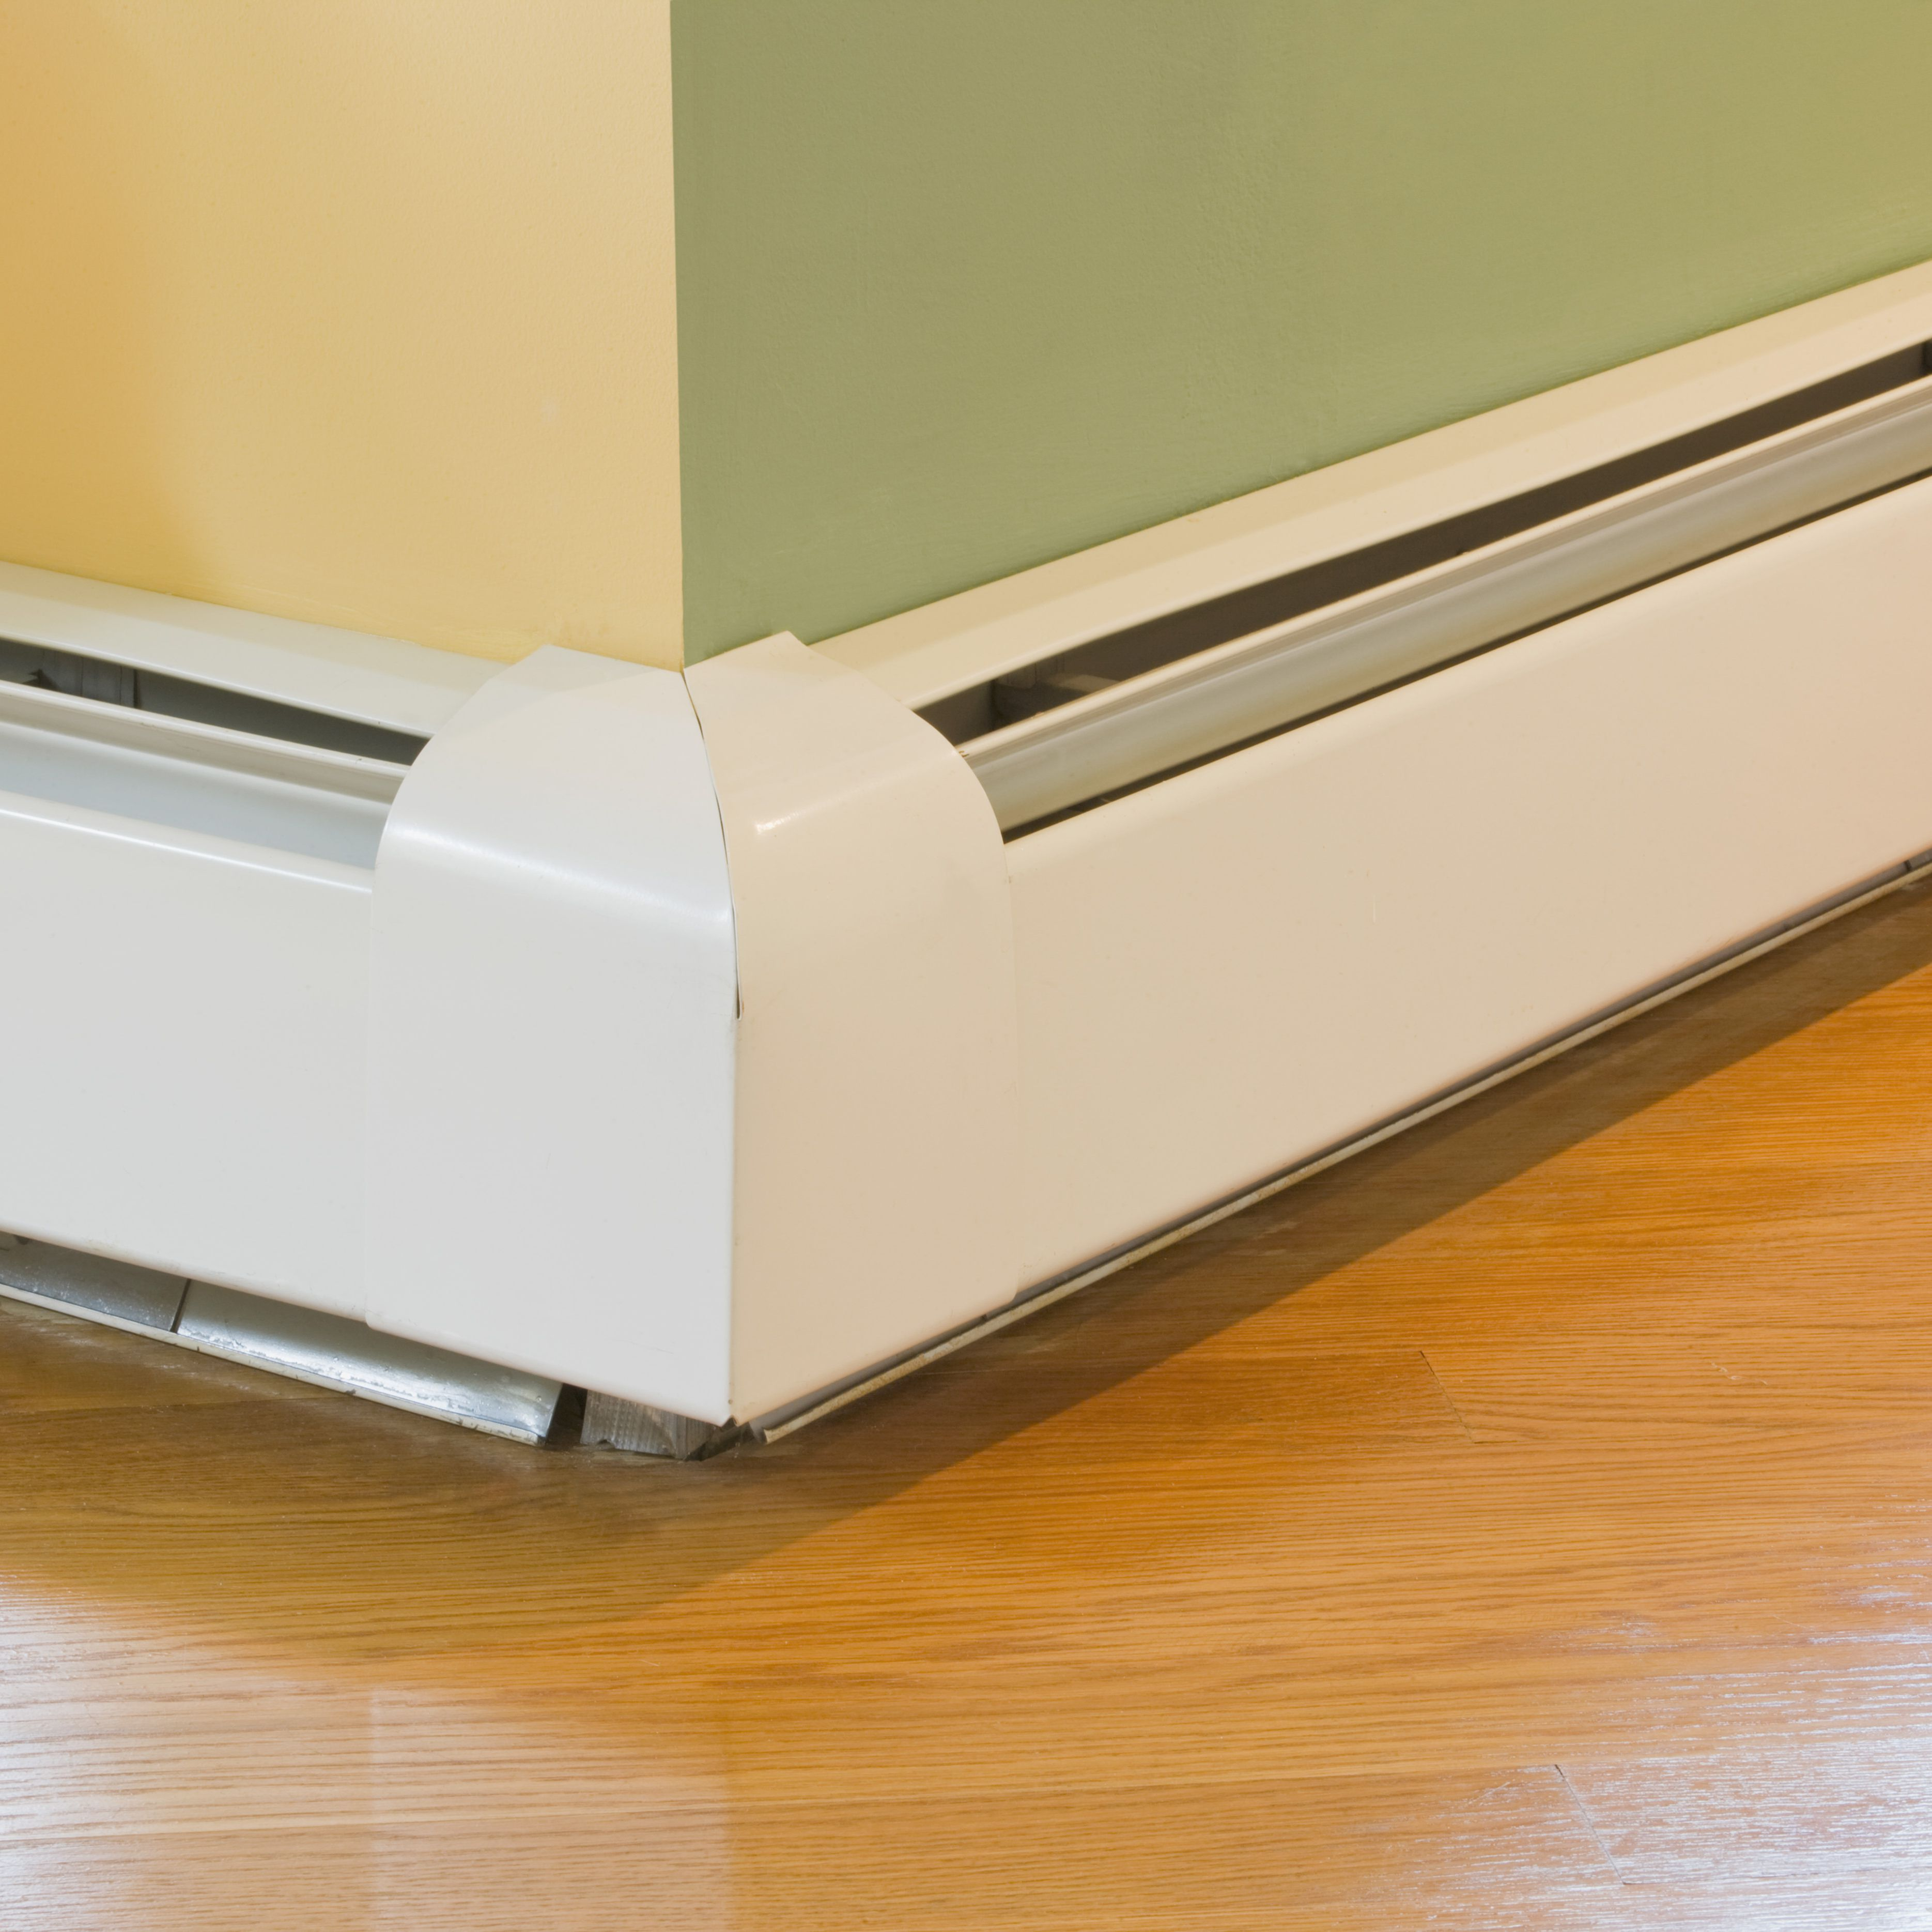 How To Install A Baseboard Heater